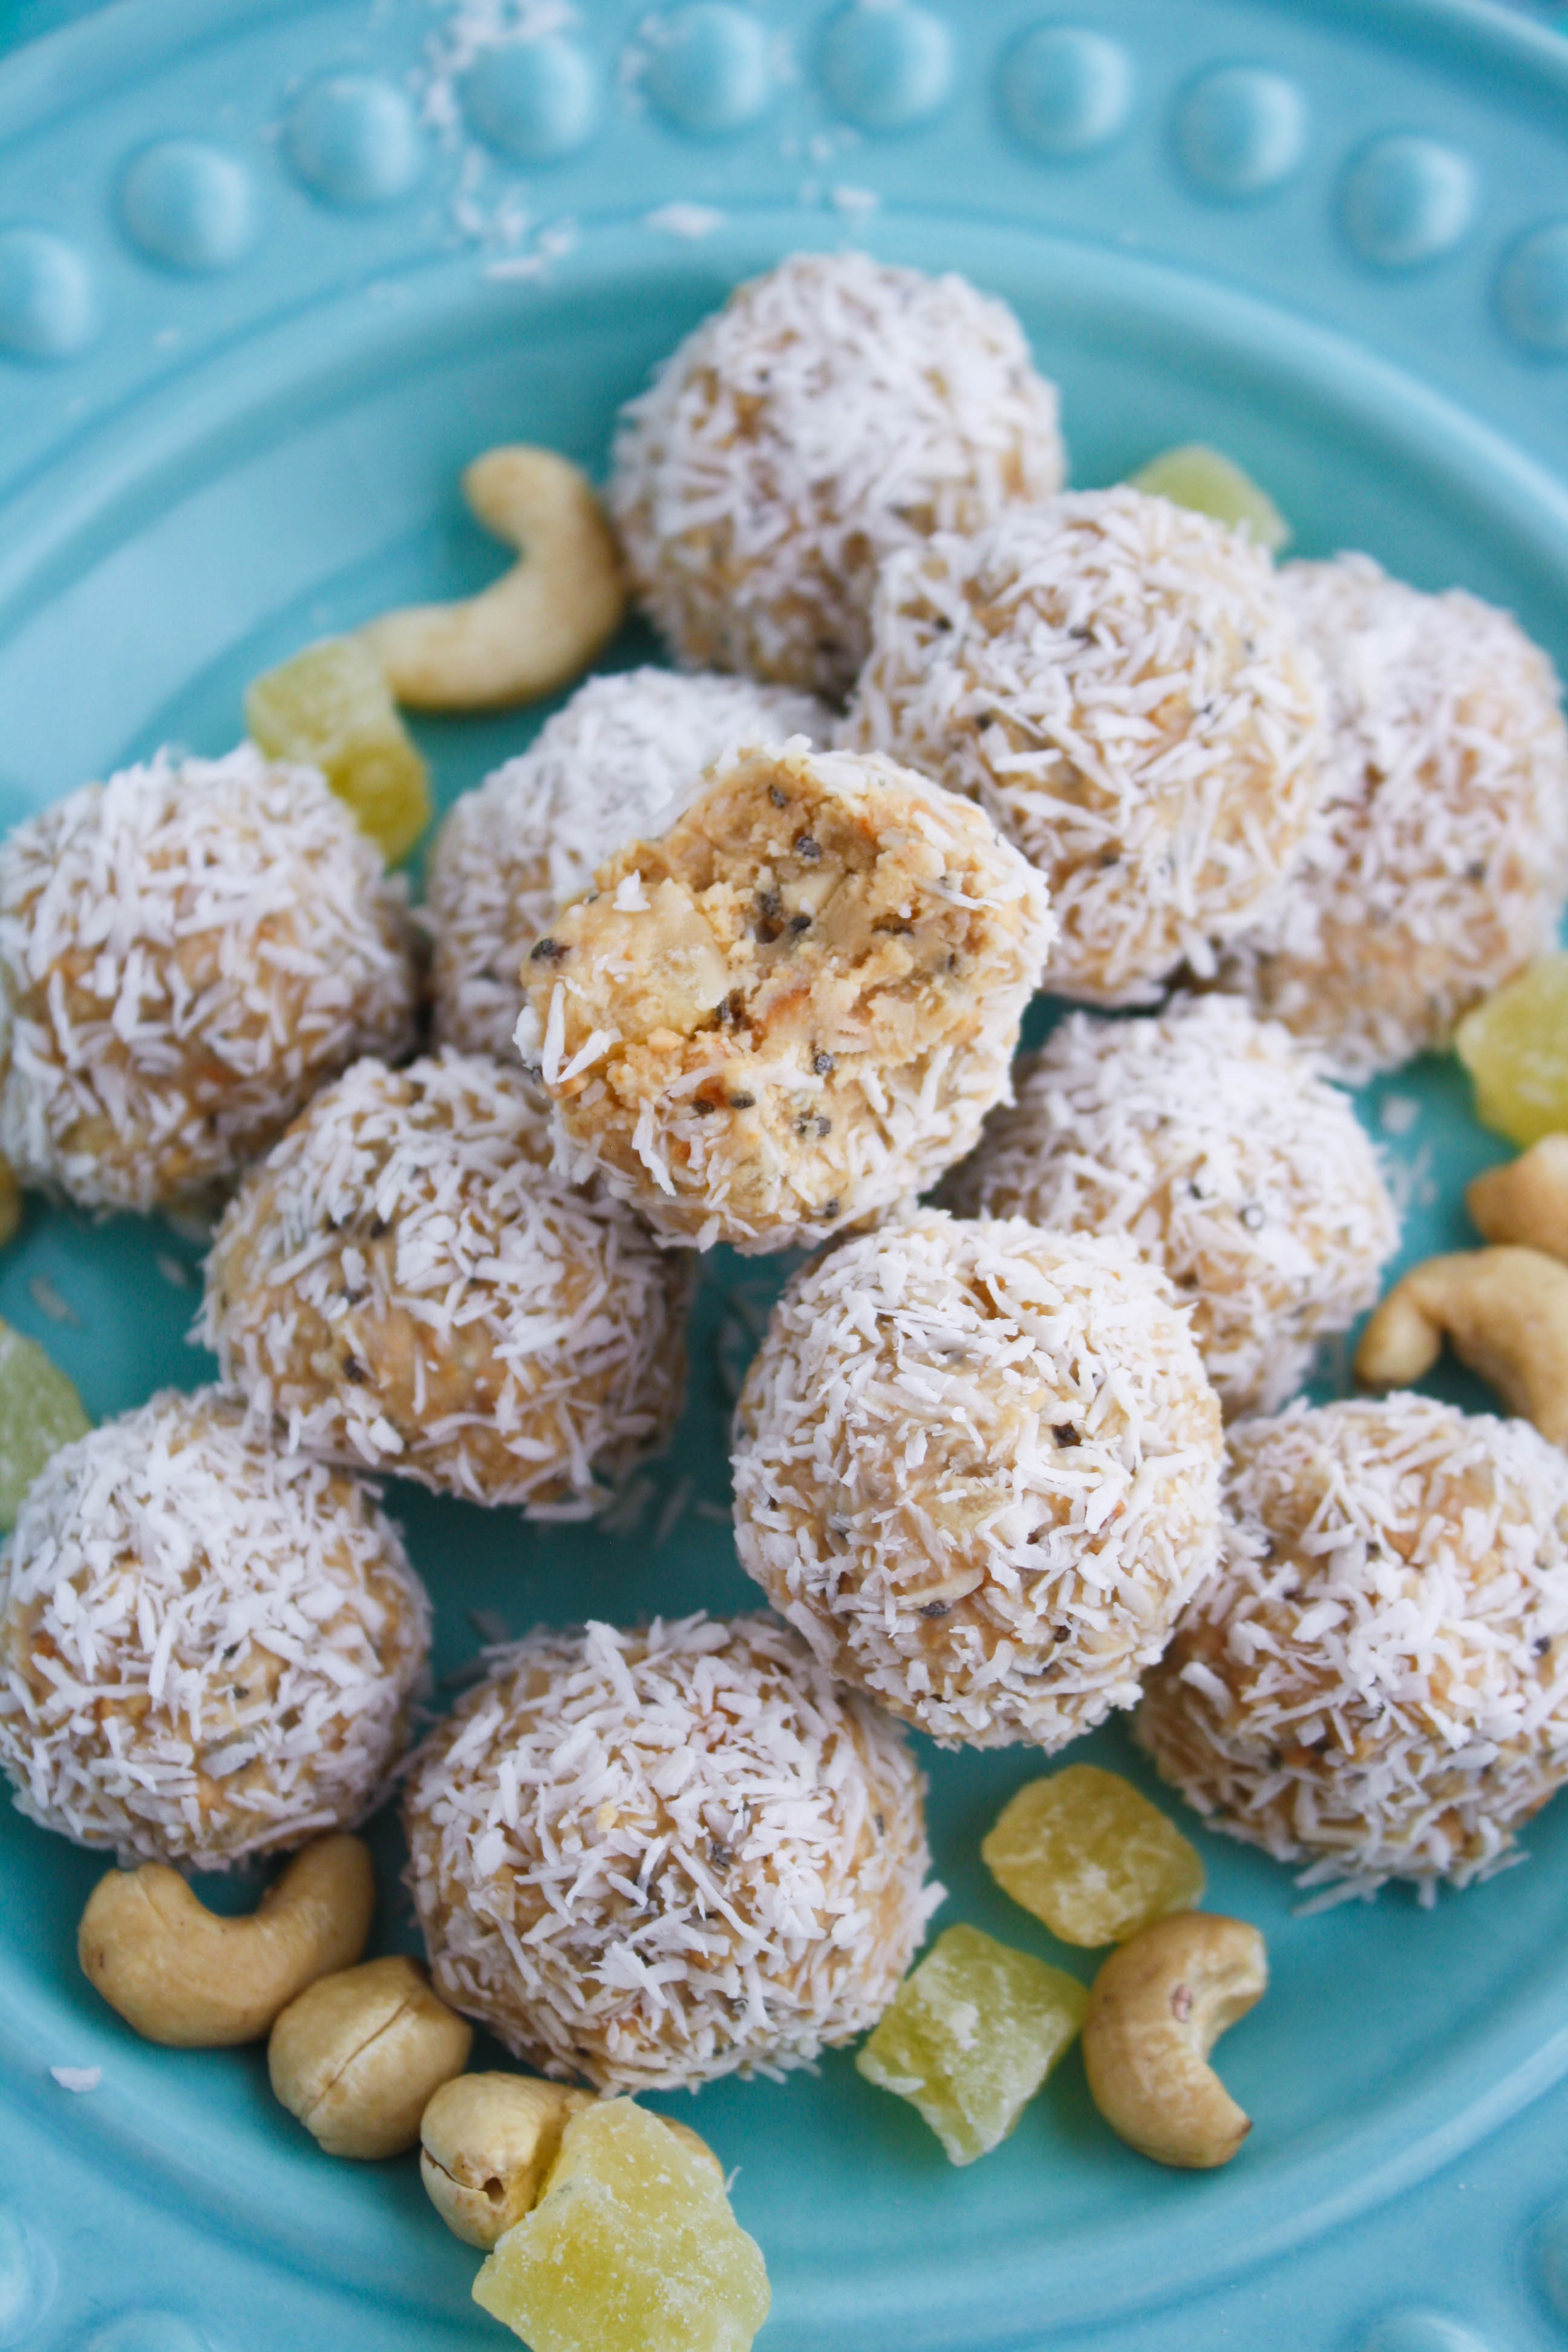 No bake coconut, cashew, and pineapple energy bites are a fun and healthy snack option. You'll enjoy these no bake energy bites when you're hungry!